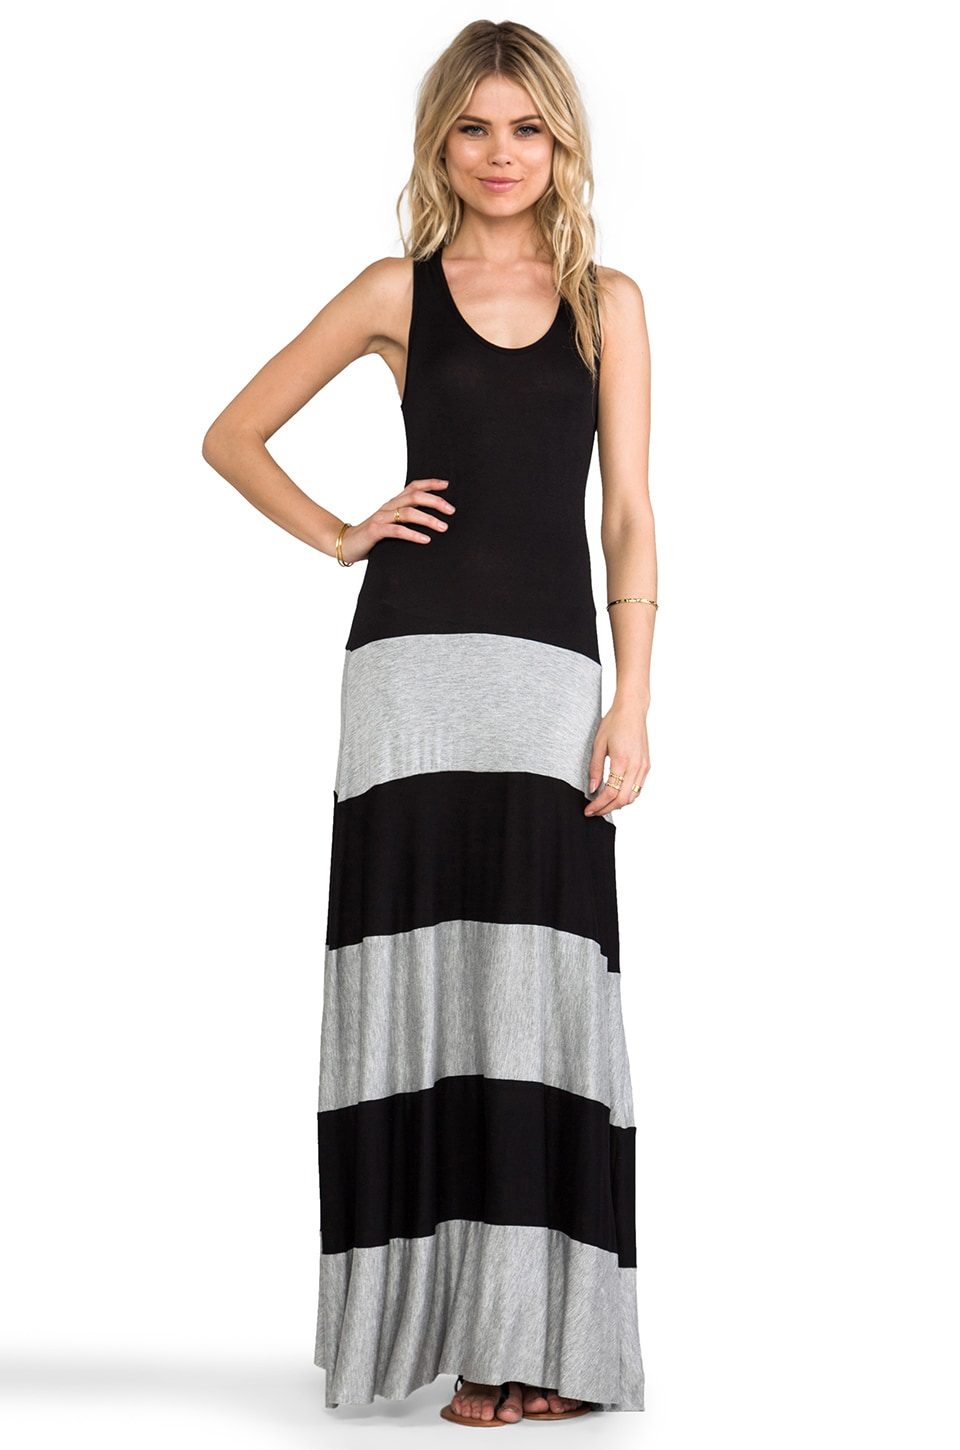 Karina Grimaldi Biscot Maxi Tank Dress in Grey